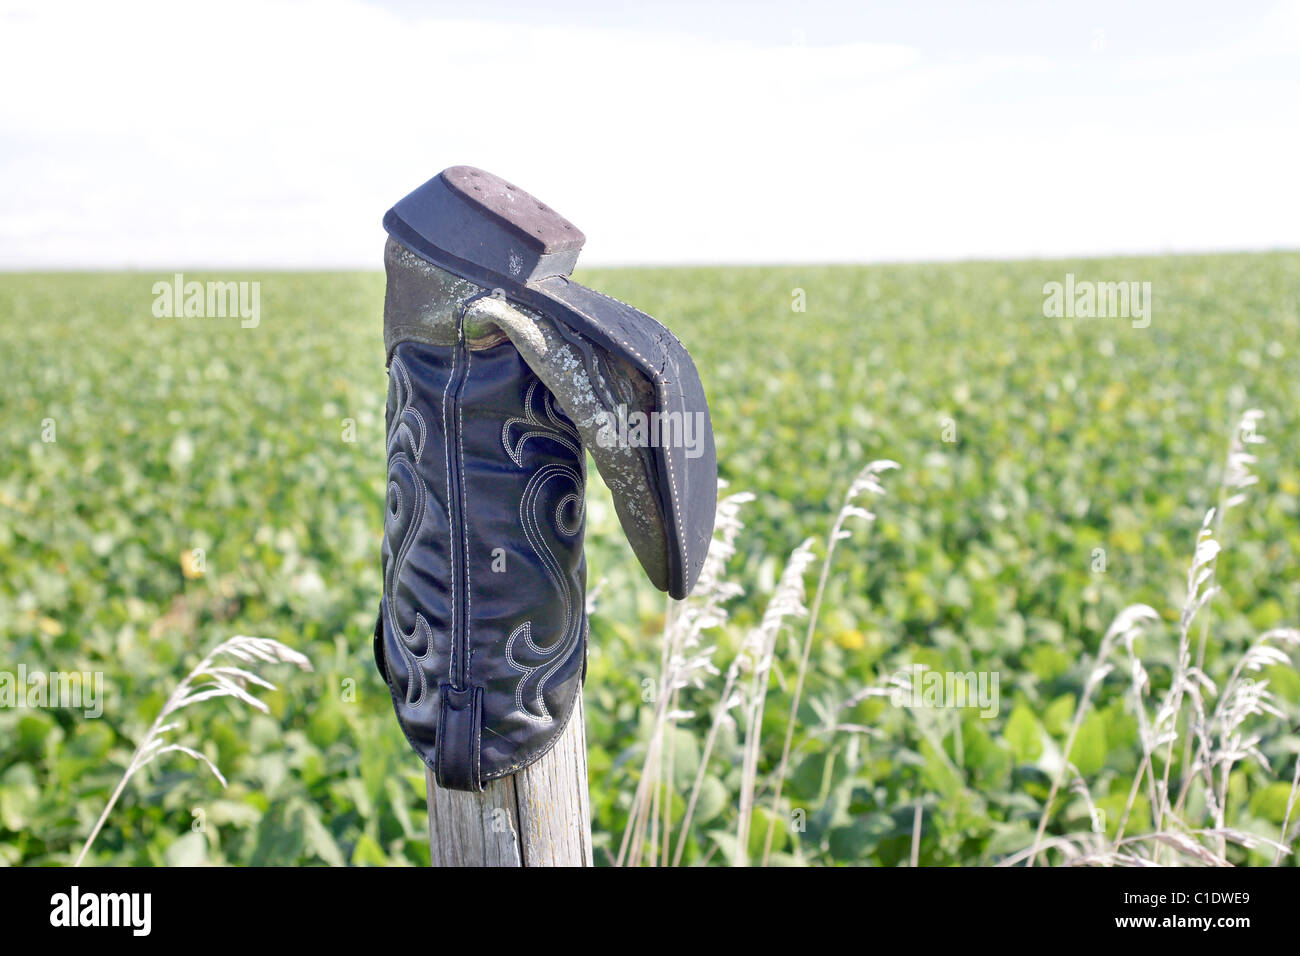 Boot on a fencepost in rural Iowa - Stock Image